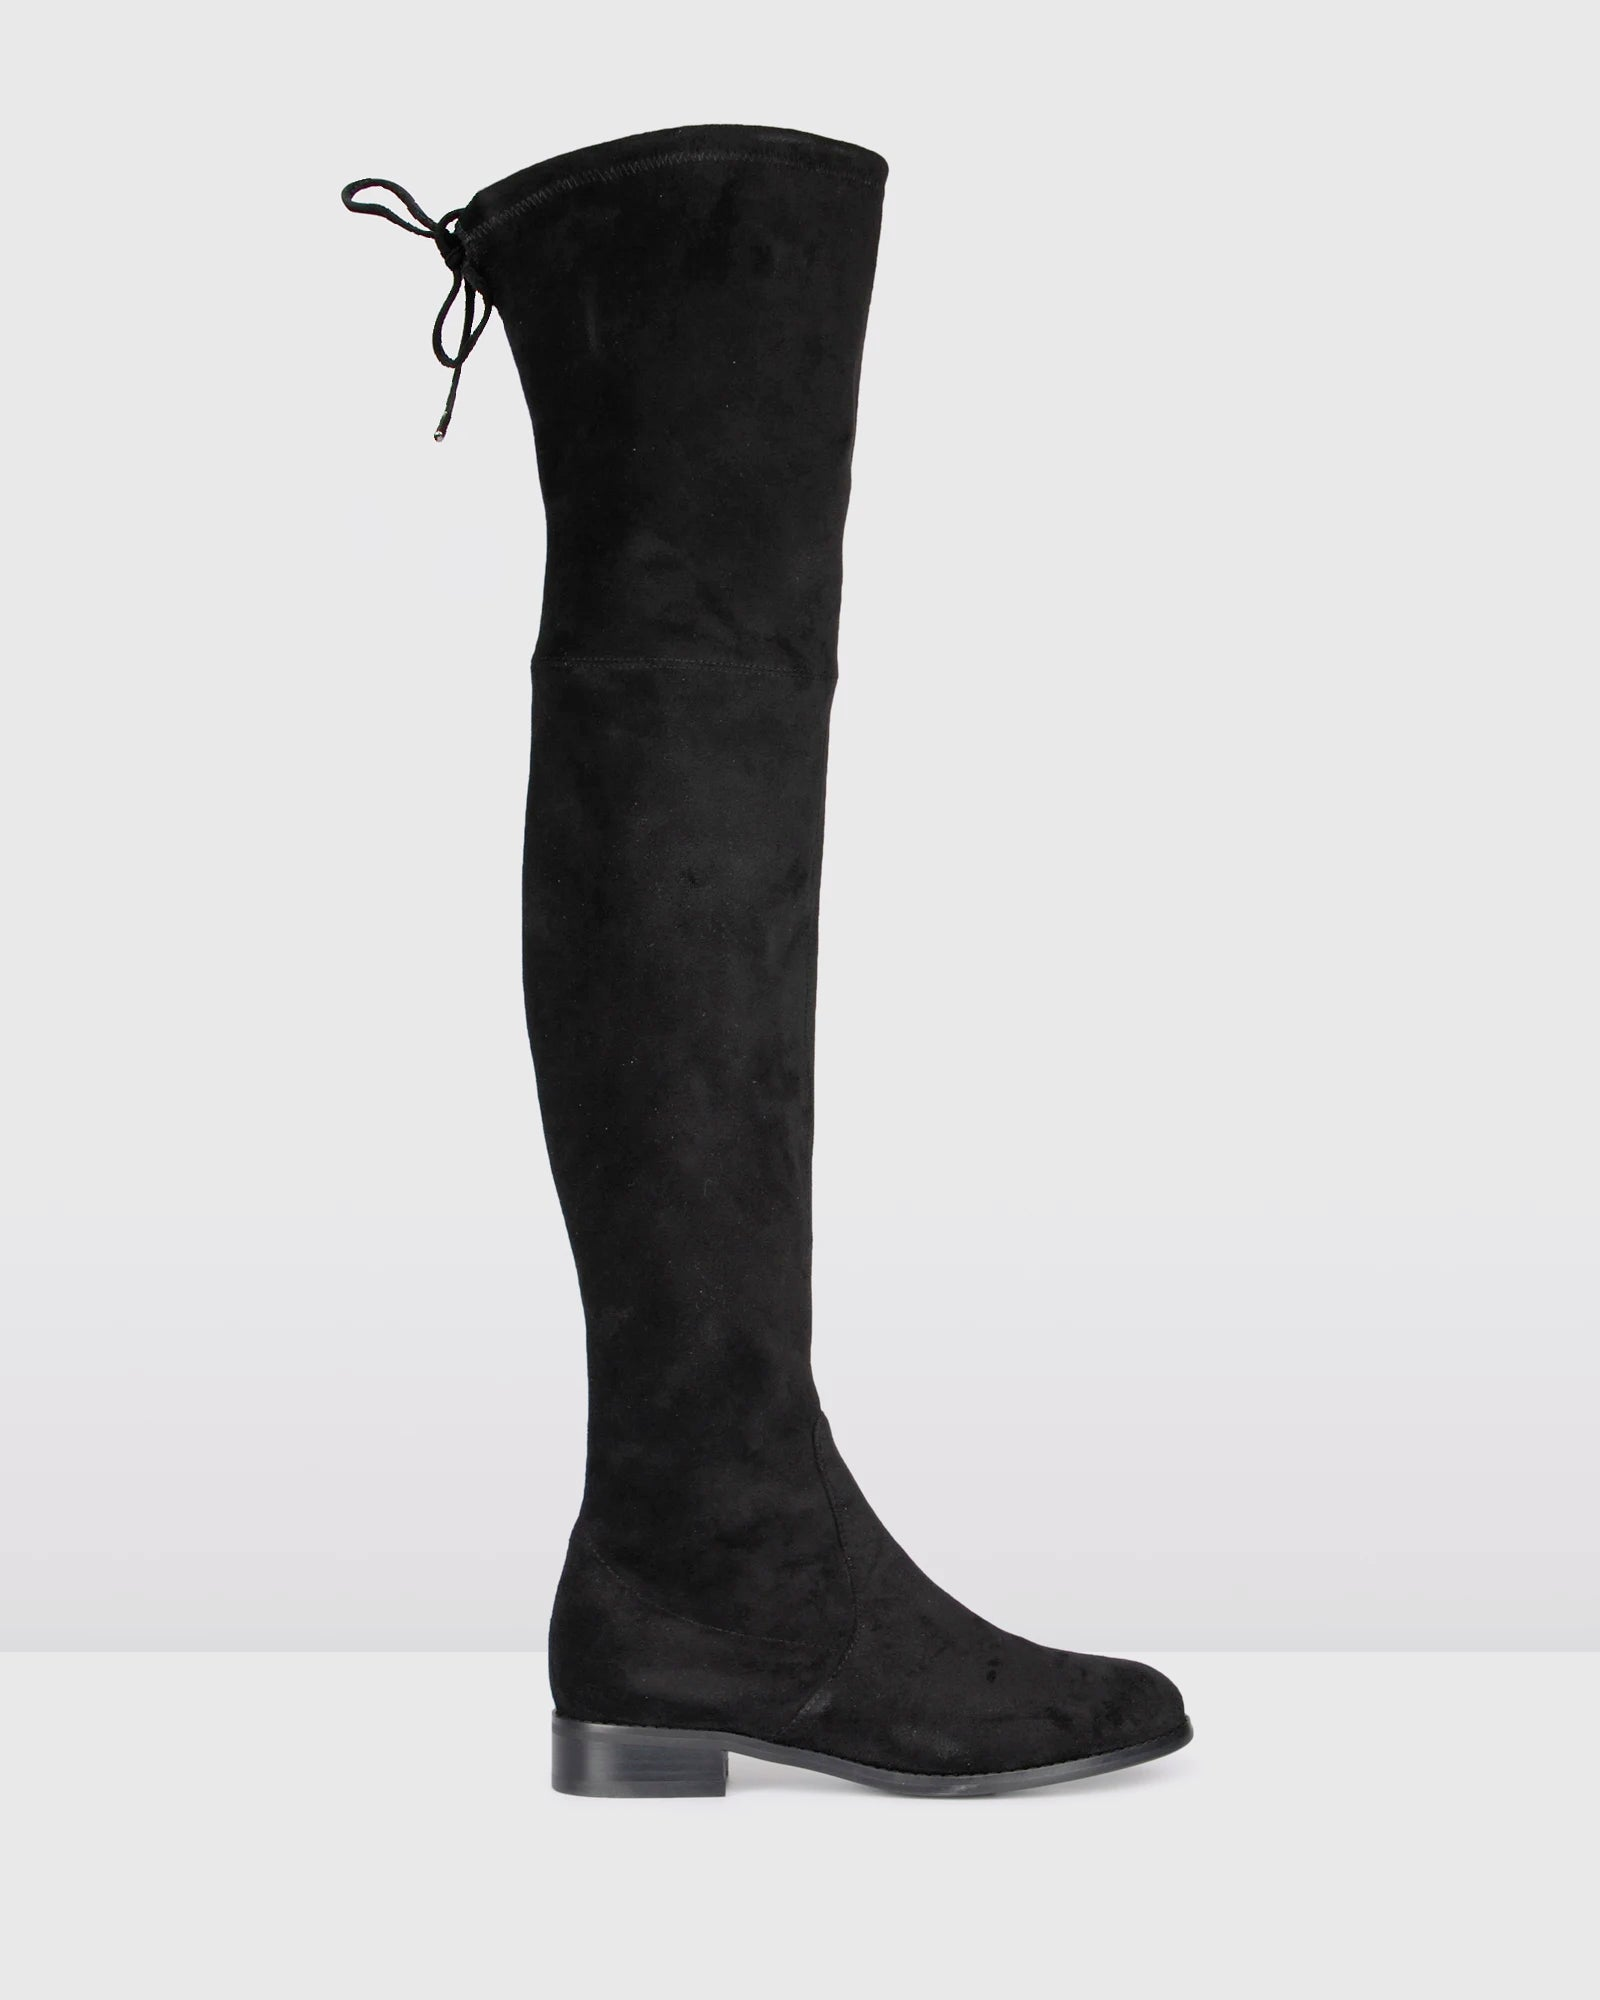 RAVELLO OVER THE KNEE BOOTS BLACK SUEDE